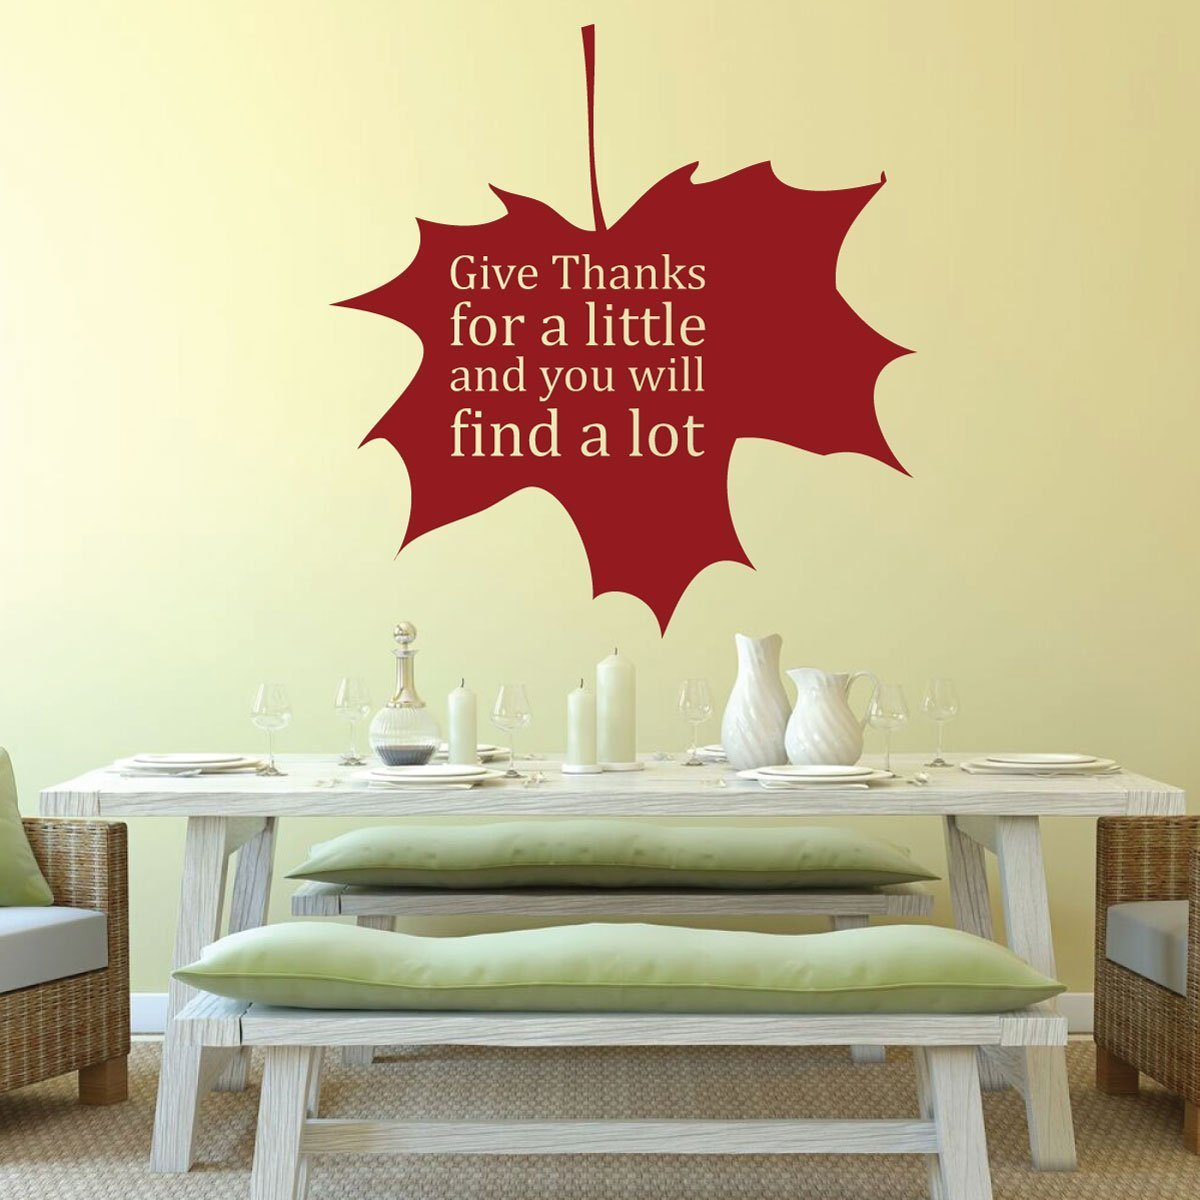 Give Thanks - Give Thanks For a Little and You Will Find a Lot - Give Thanks Decal